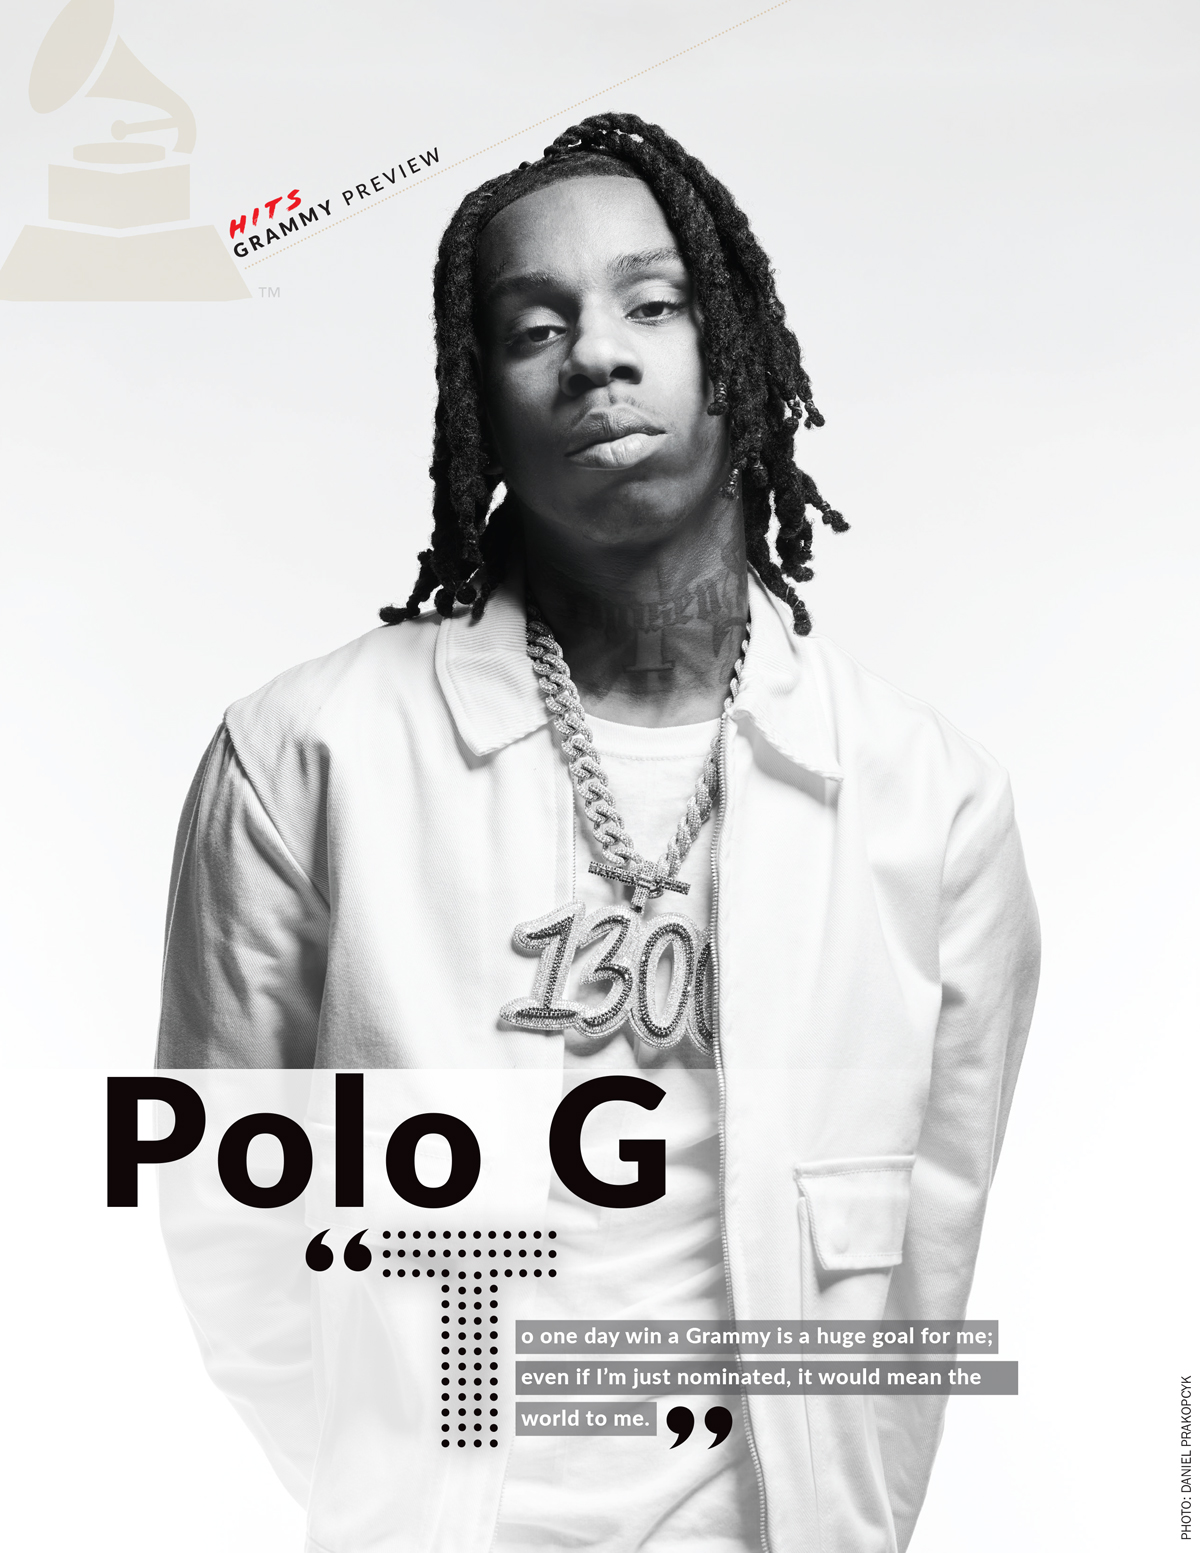 1321-2021-POLO-G-GRAMMY-QUOTE-web